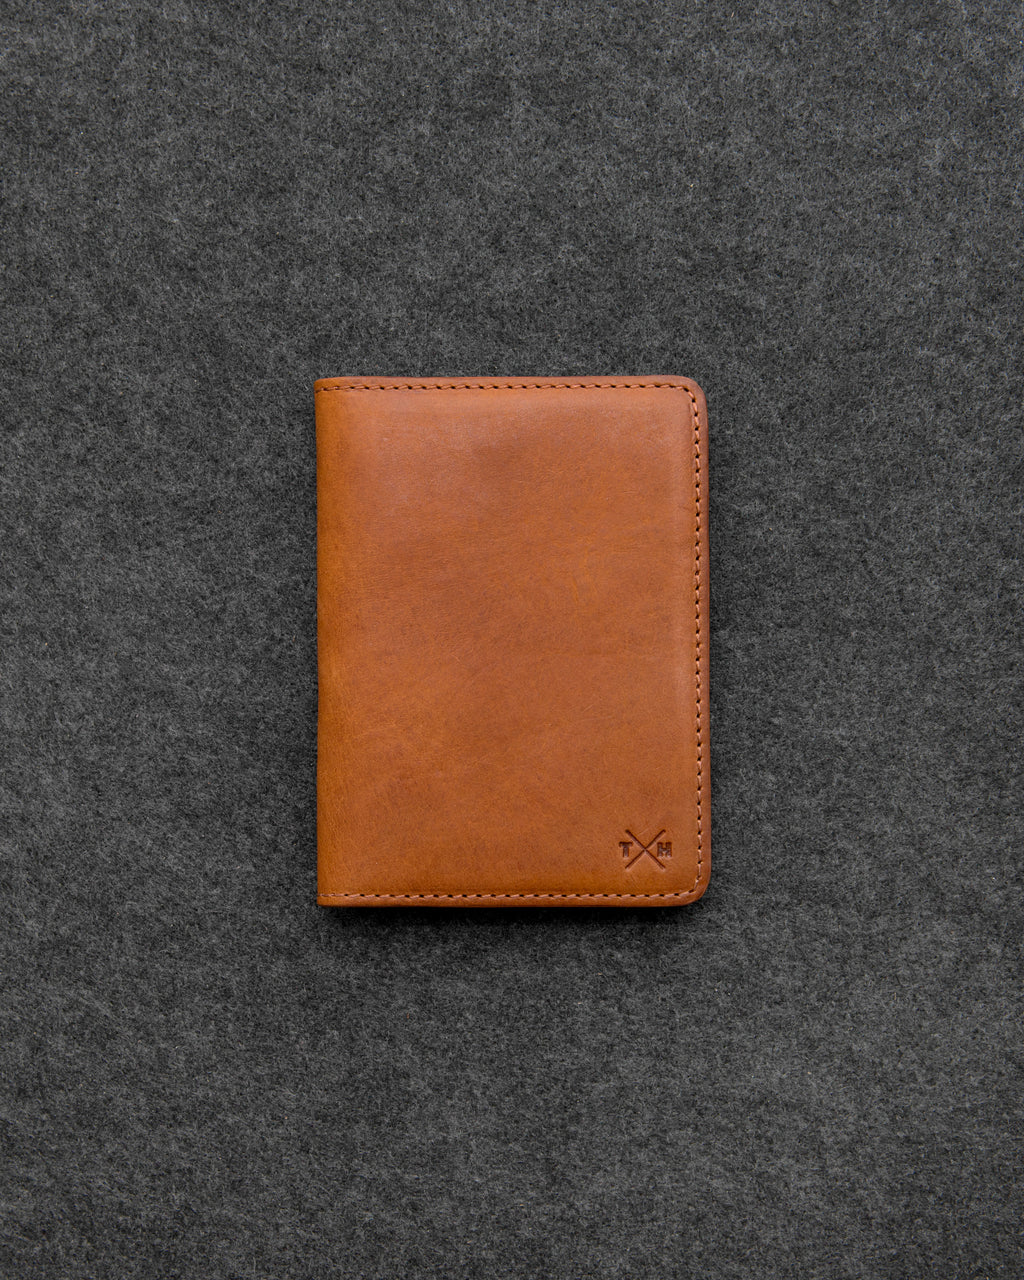 Chukka Leather Passport Holder